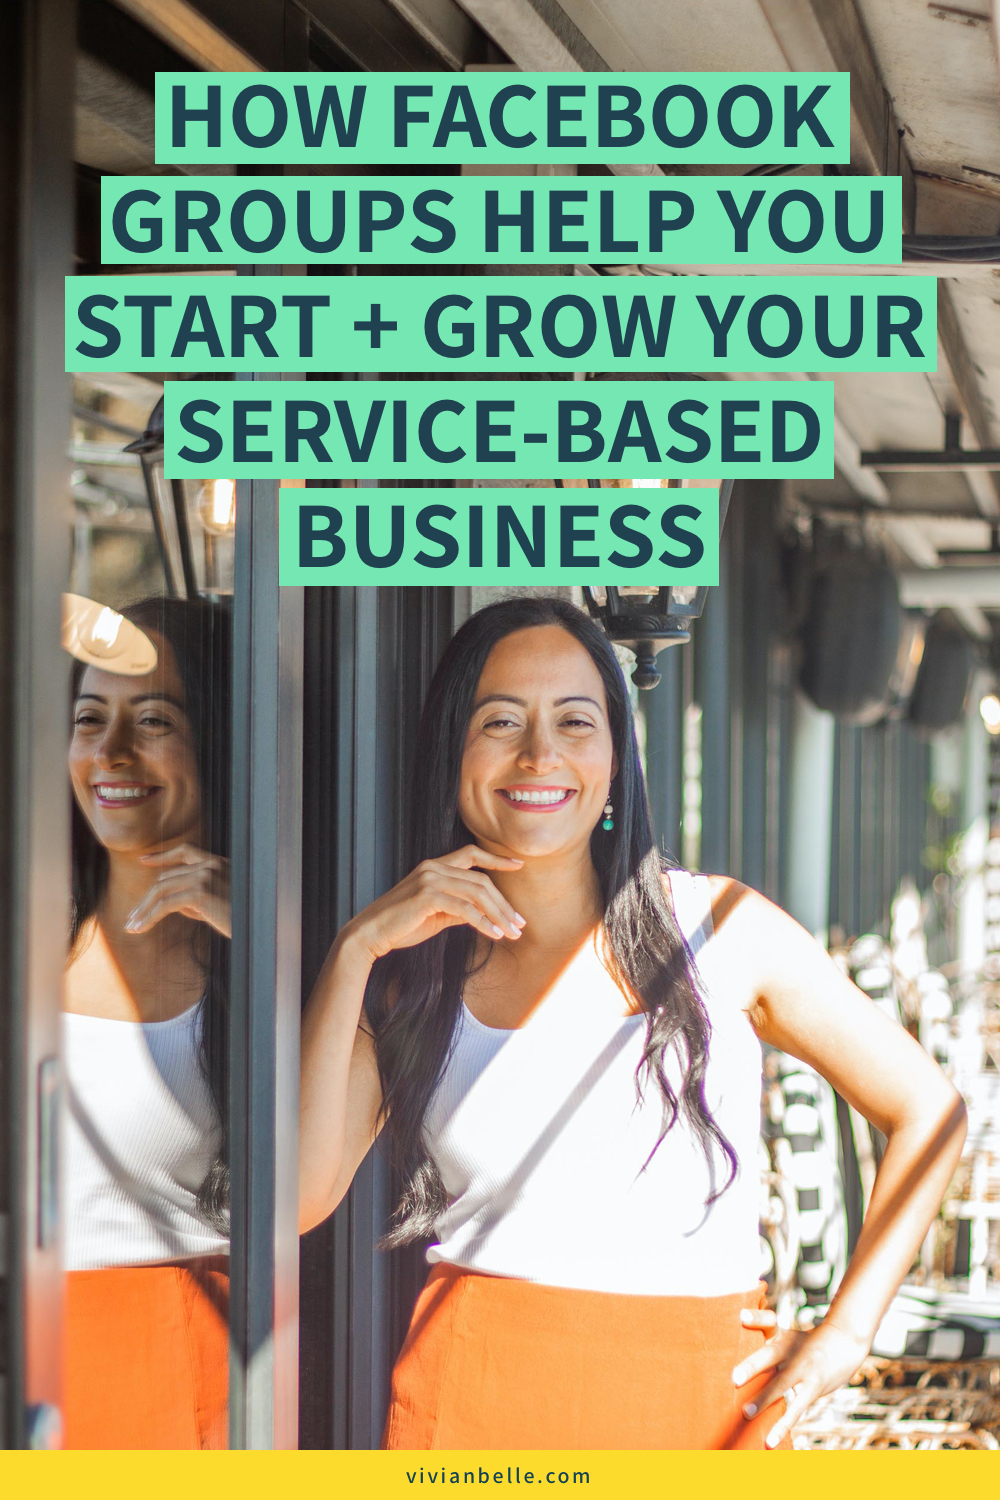 Facebook groups for business: How to use Facebook groups to help you start and grow your service-based business